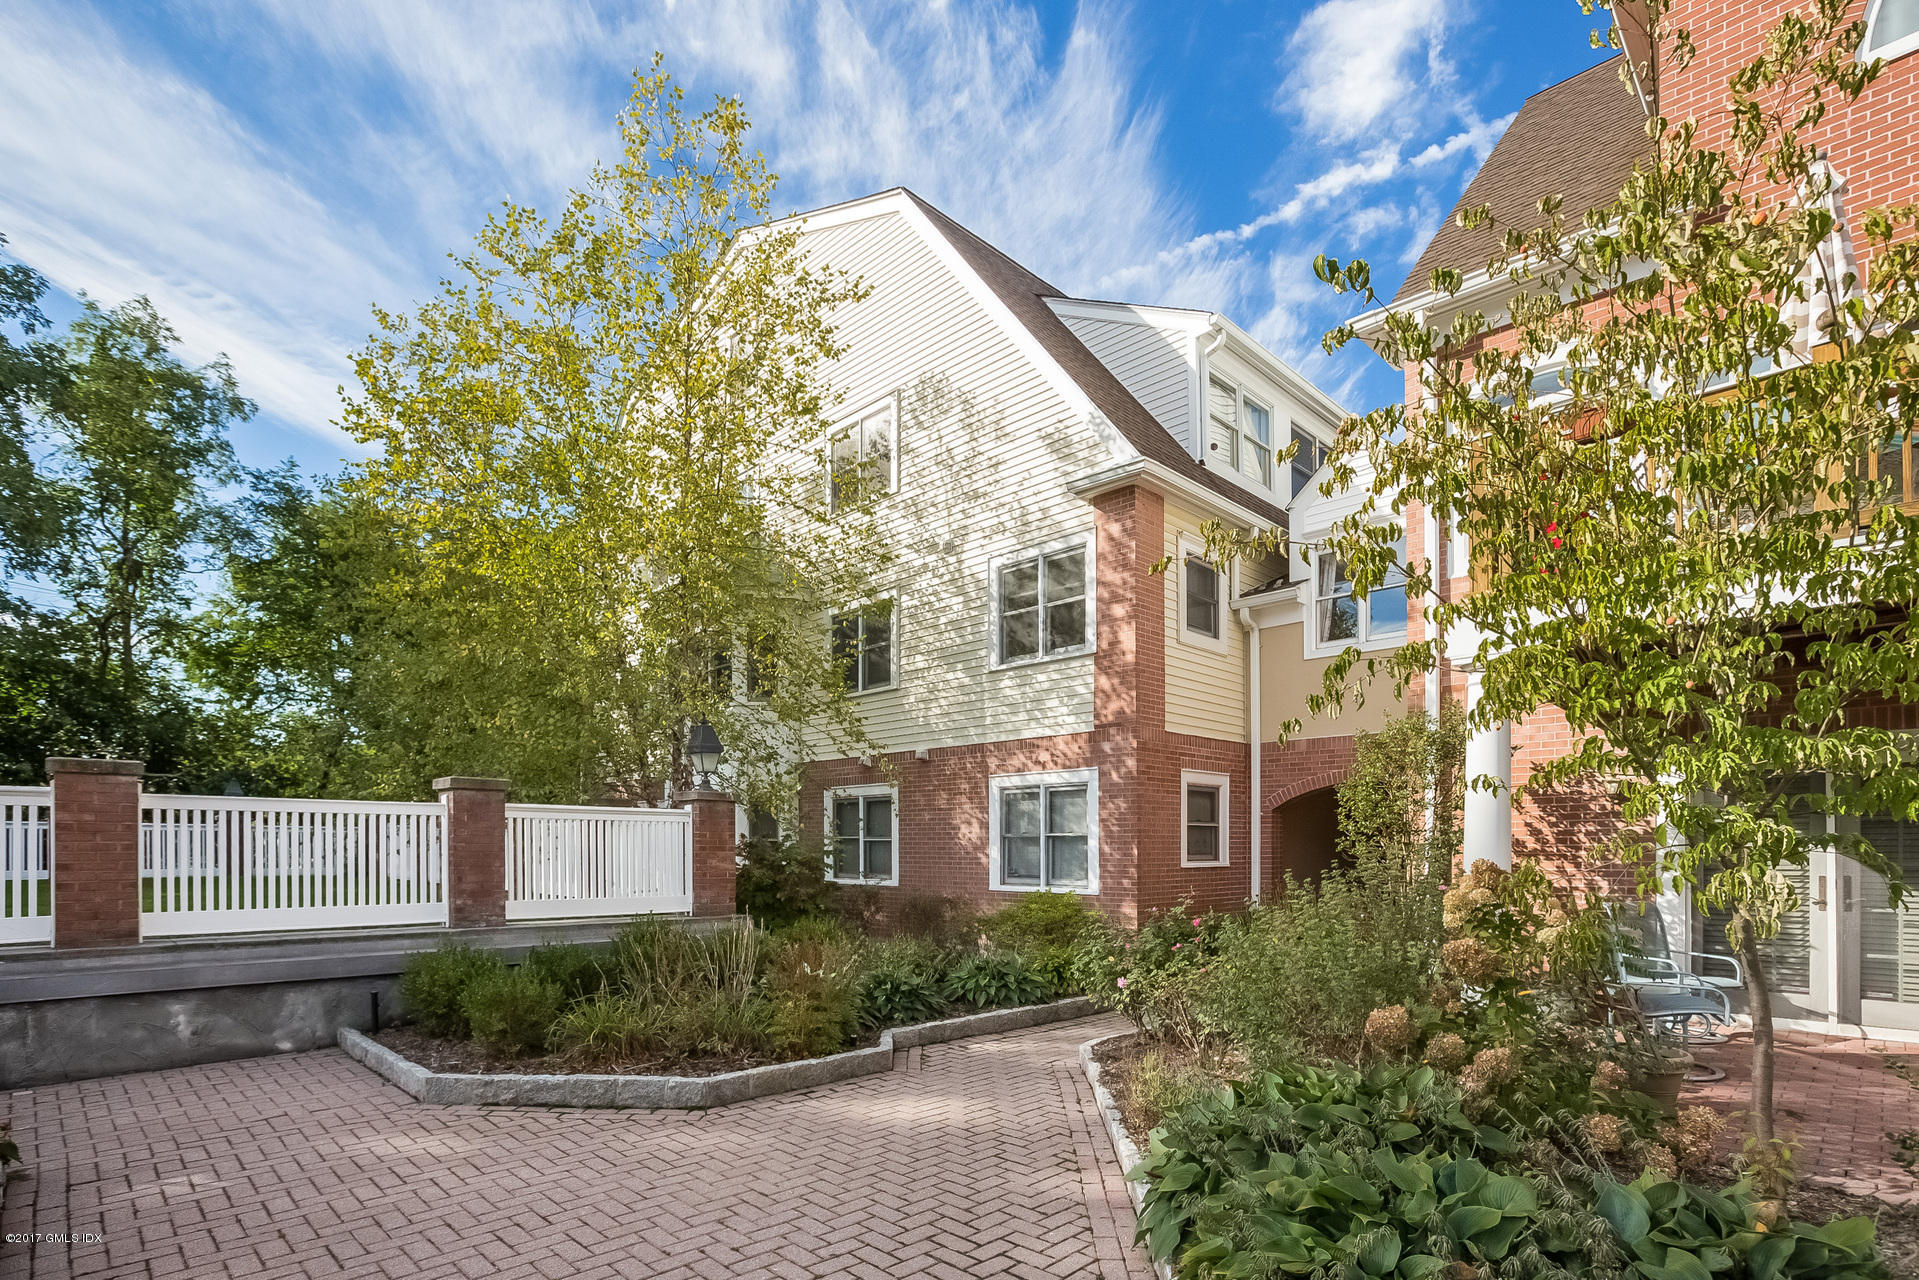 51 Forest Avenue,Old Greenwich,Connecticut 06870,2 Bedrooms Bedrooms,2 BathroomsBathrooms,Condominium,Forest,105833